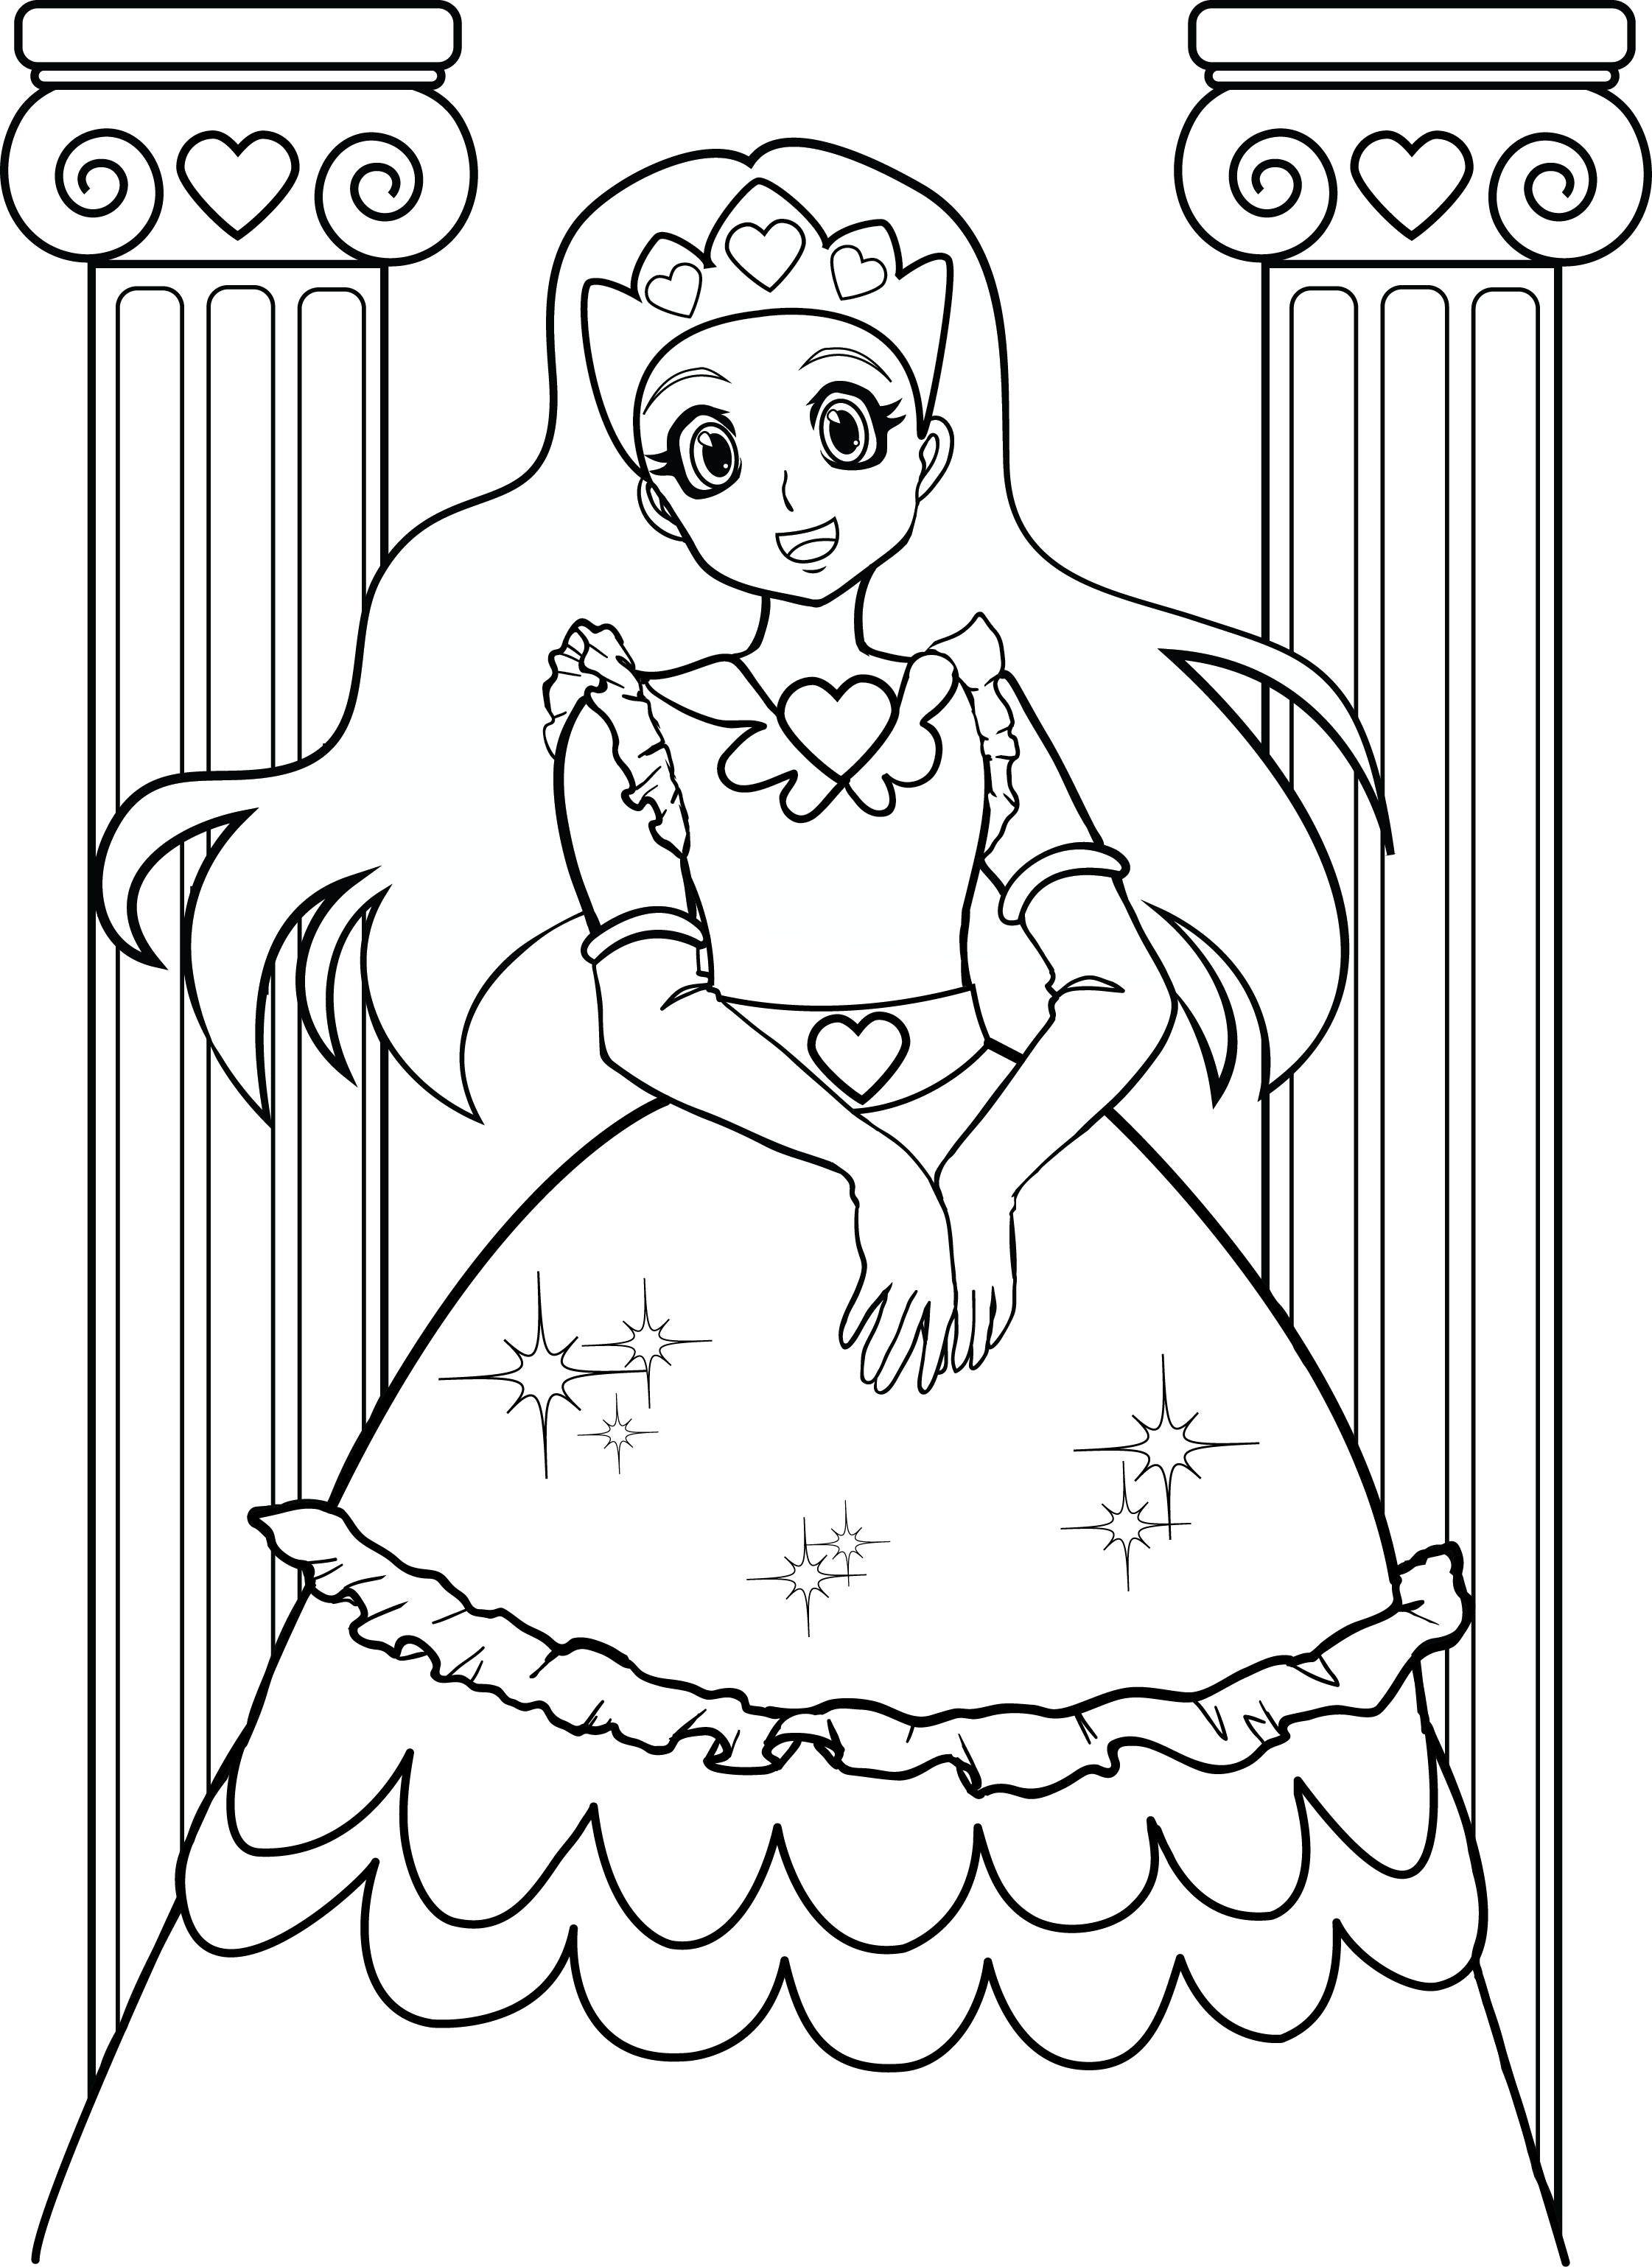 Best ideas about Free Coloring Pages For Girls To Print . Save or Pin Coloring Pages For Girls 7 Now.